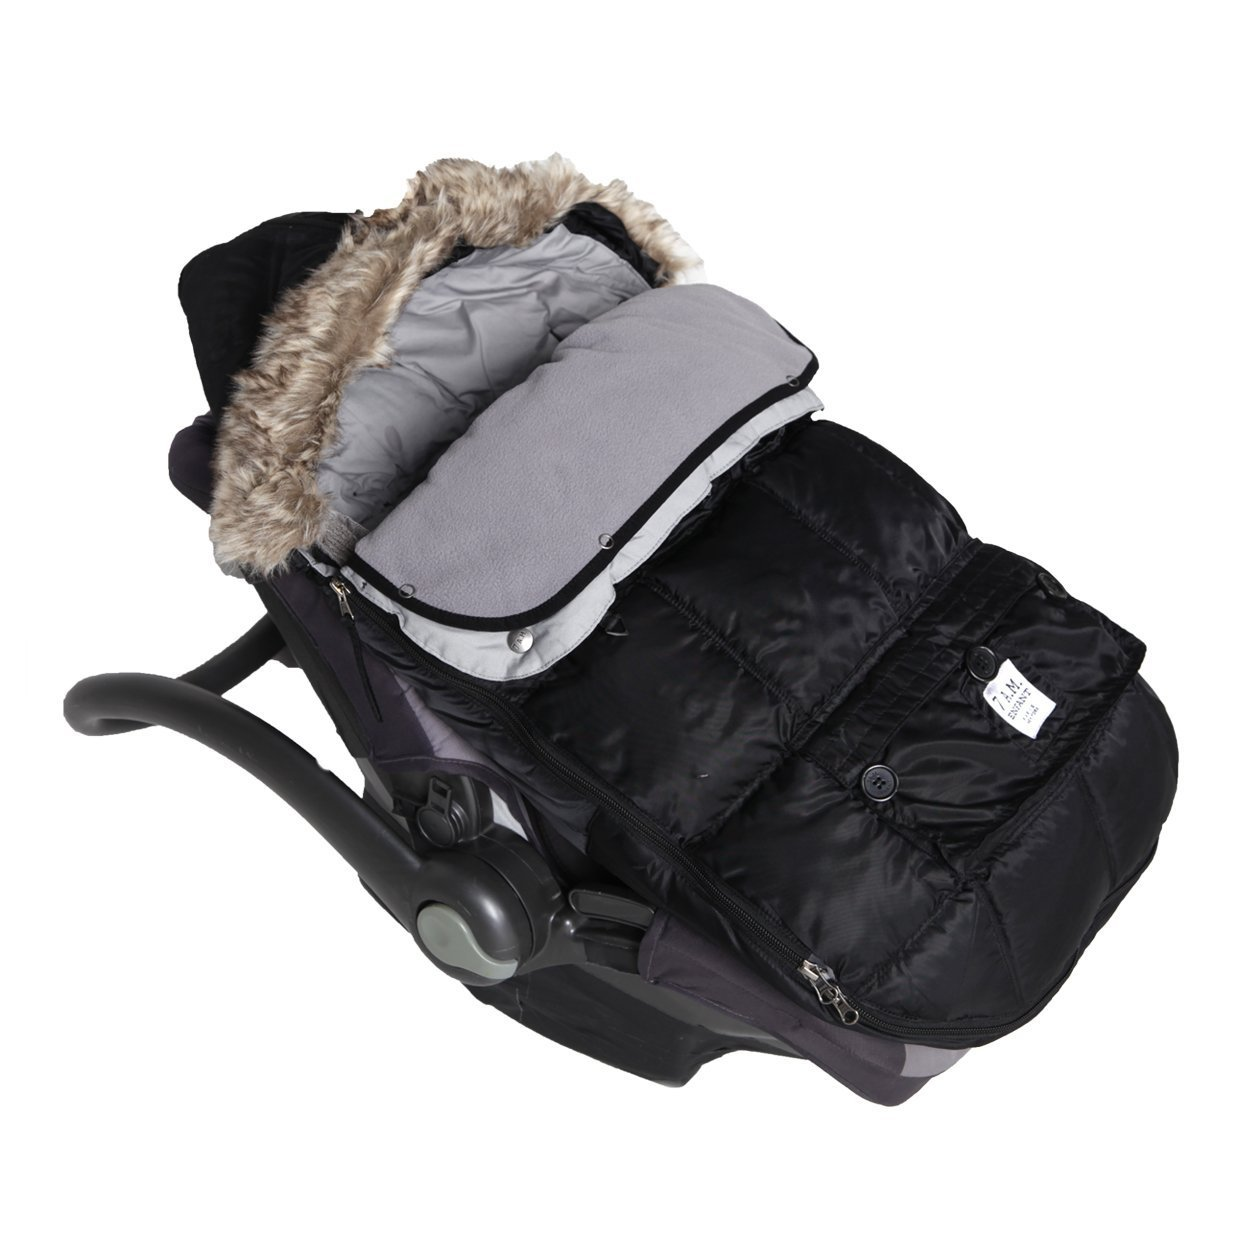 7AM Enfant Le Sac Igloo, Wind and Water Resistant, Stroller and Car Seat Footmuff, Convertible into a Single Panel Cover, Best for Freezing Winter Conditions (Black, Small 0-6M)